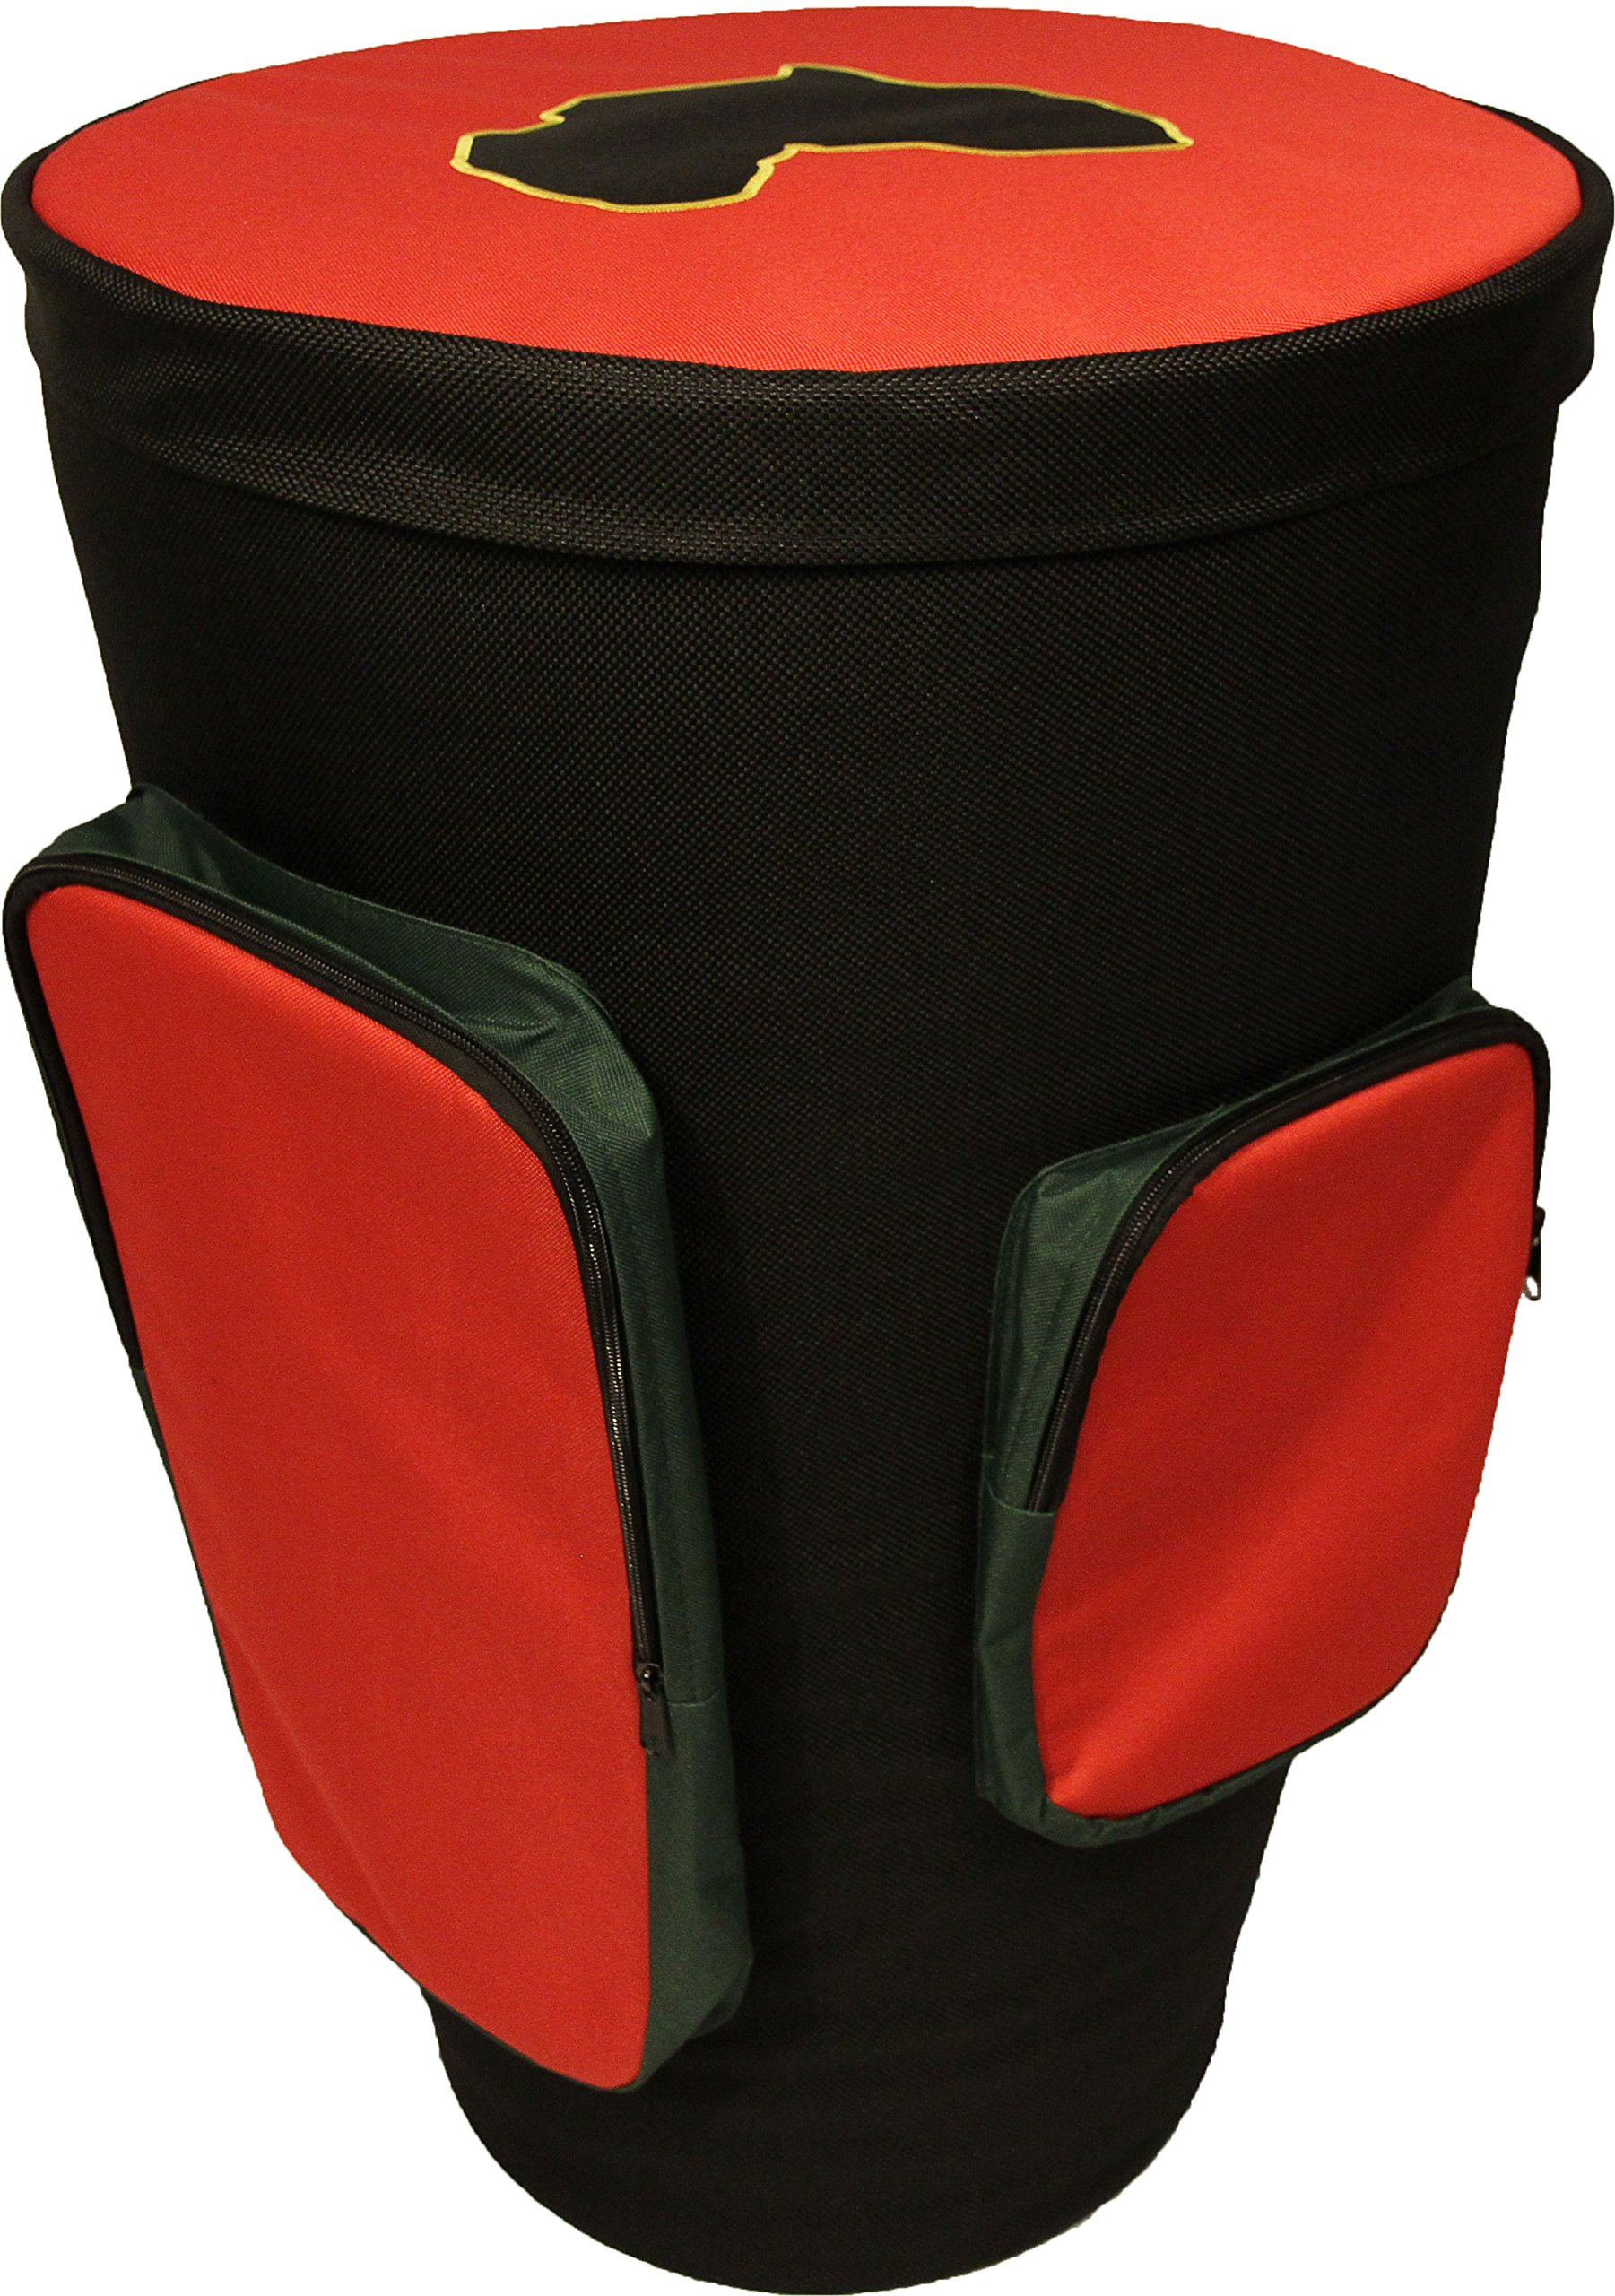 Rhythm Traders Professional Master Djembe Drum Bag - Padded Deluxe Carrying Case - 12.5'' to 14''